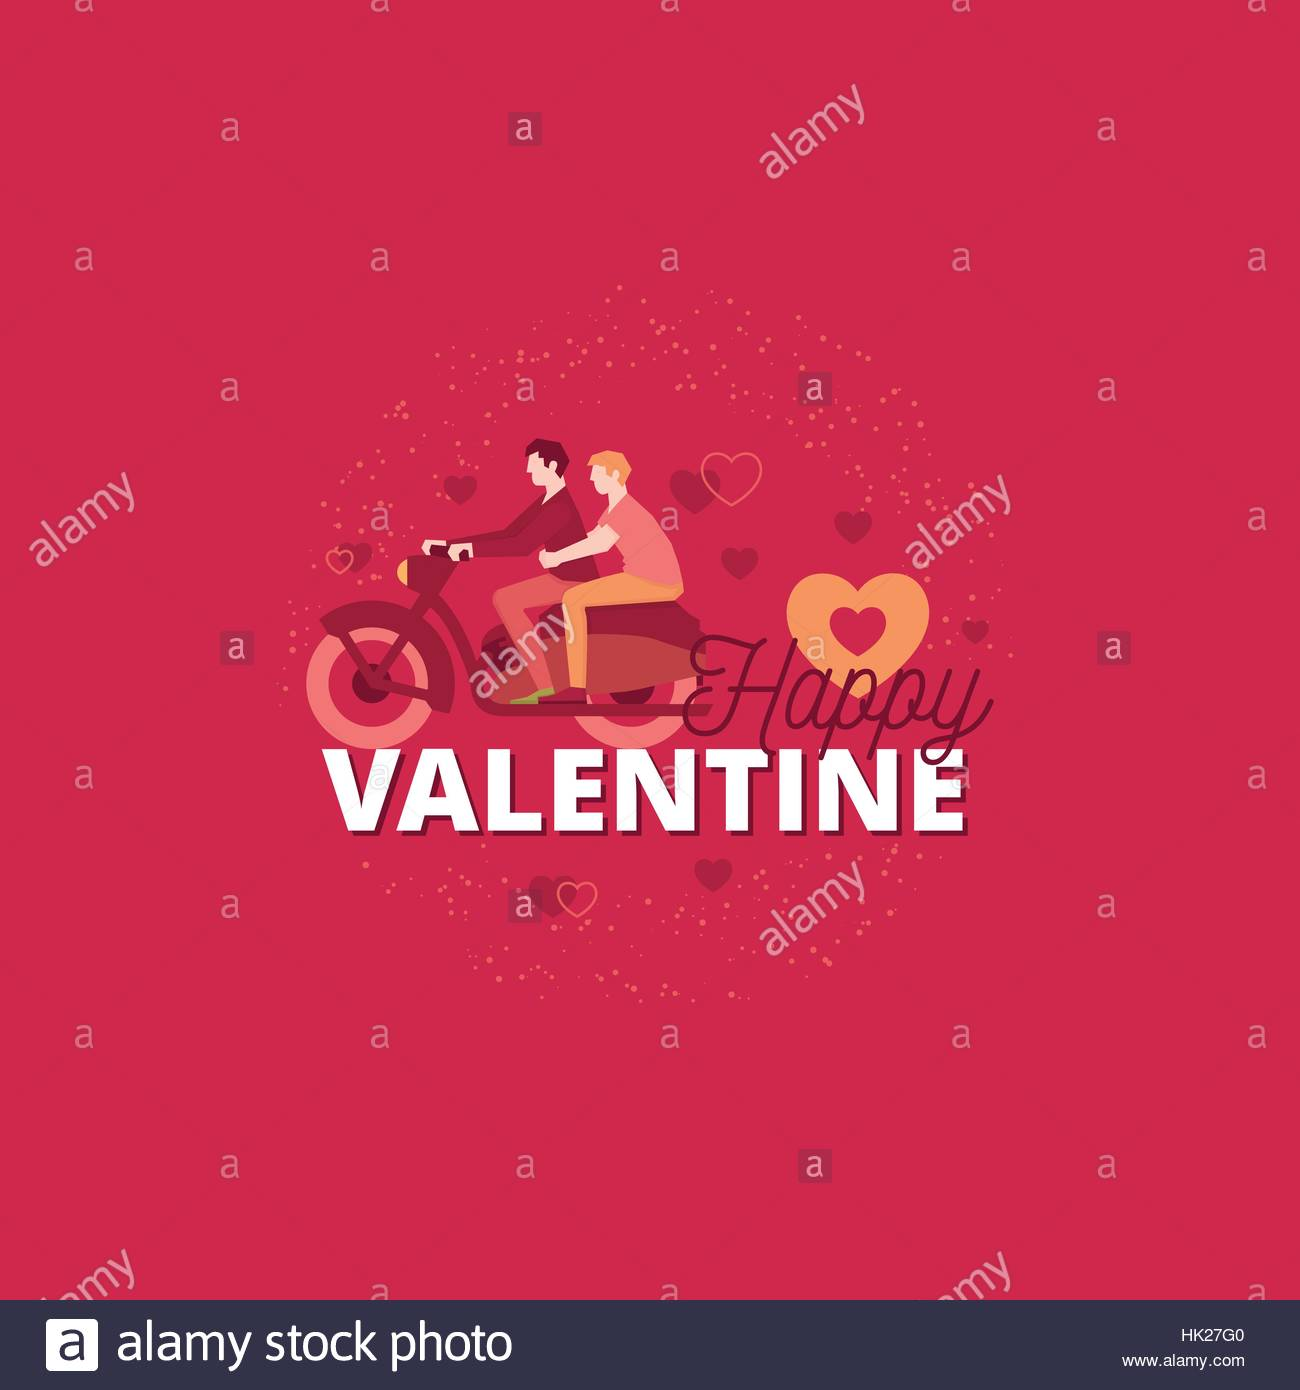 Romantic valentines day design with gay couple Two men riding on – Gay Valentines Card